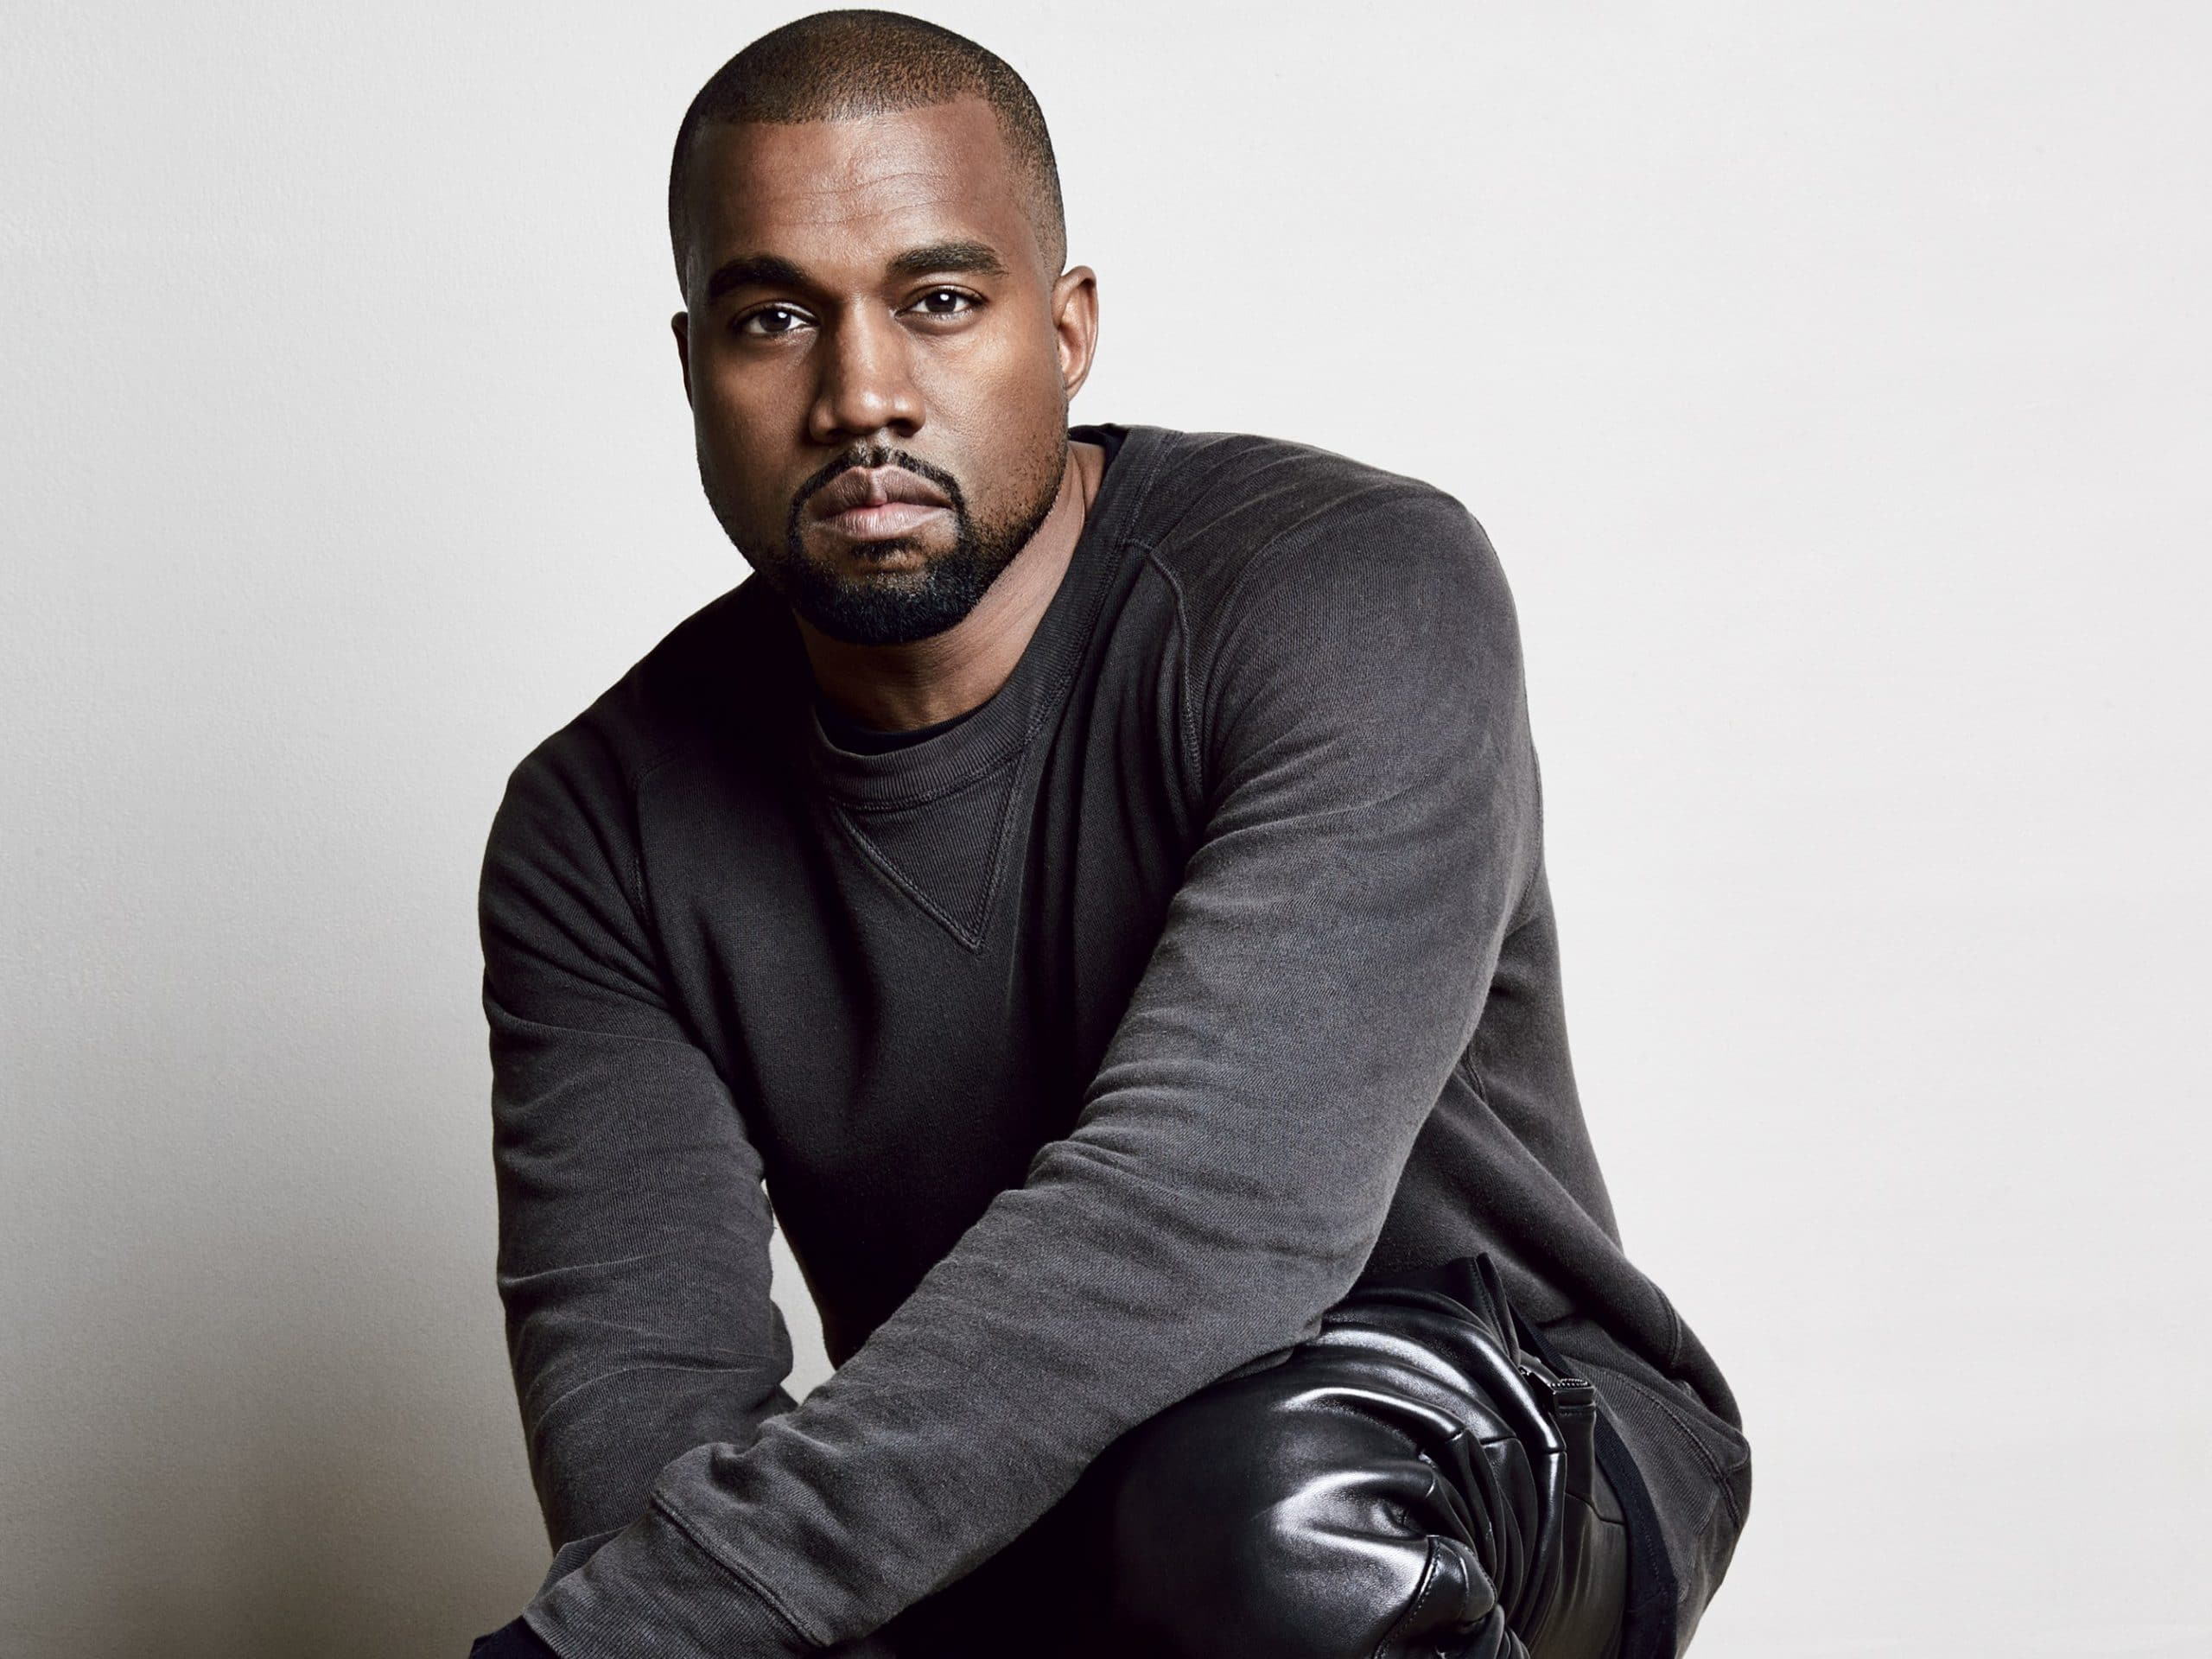 Kanye West American Rapper, Singer, Songwriter, Record Producer